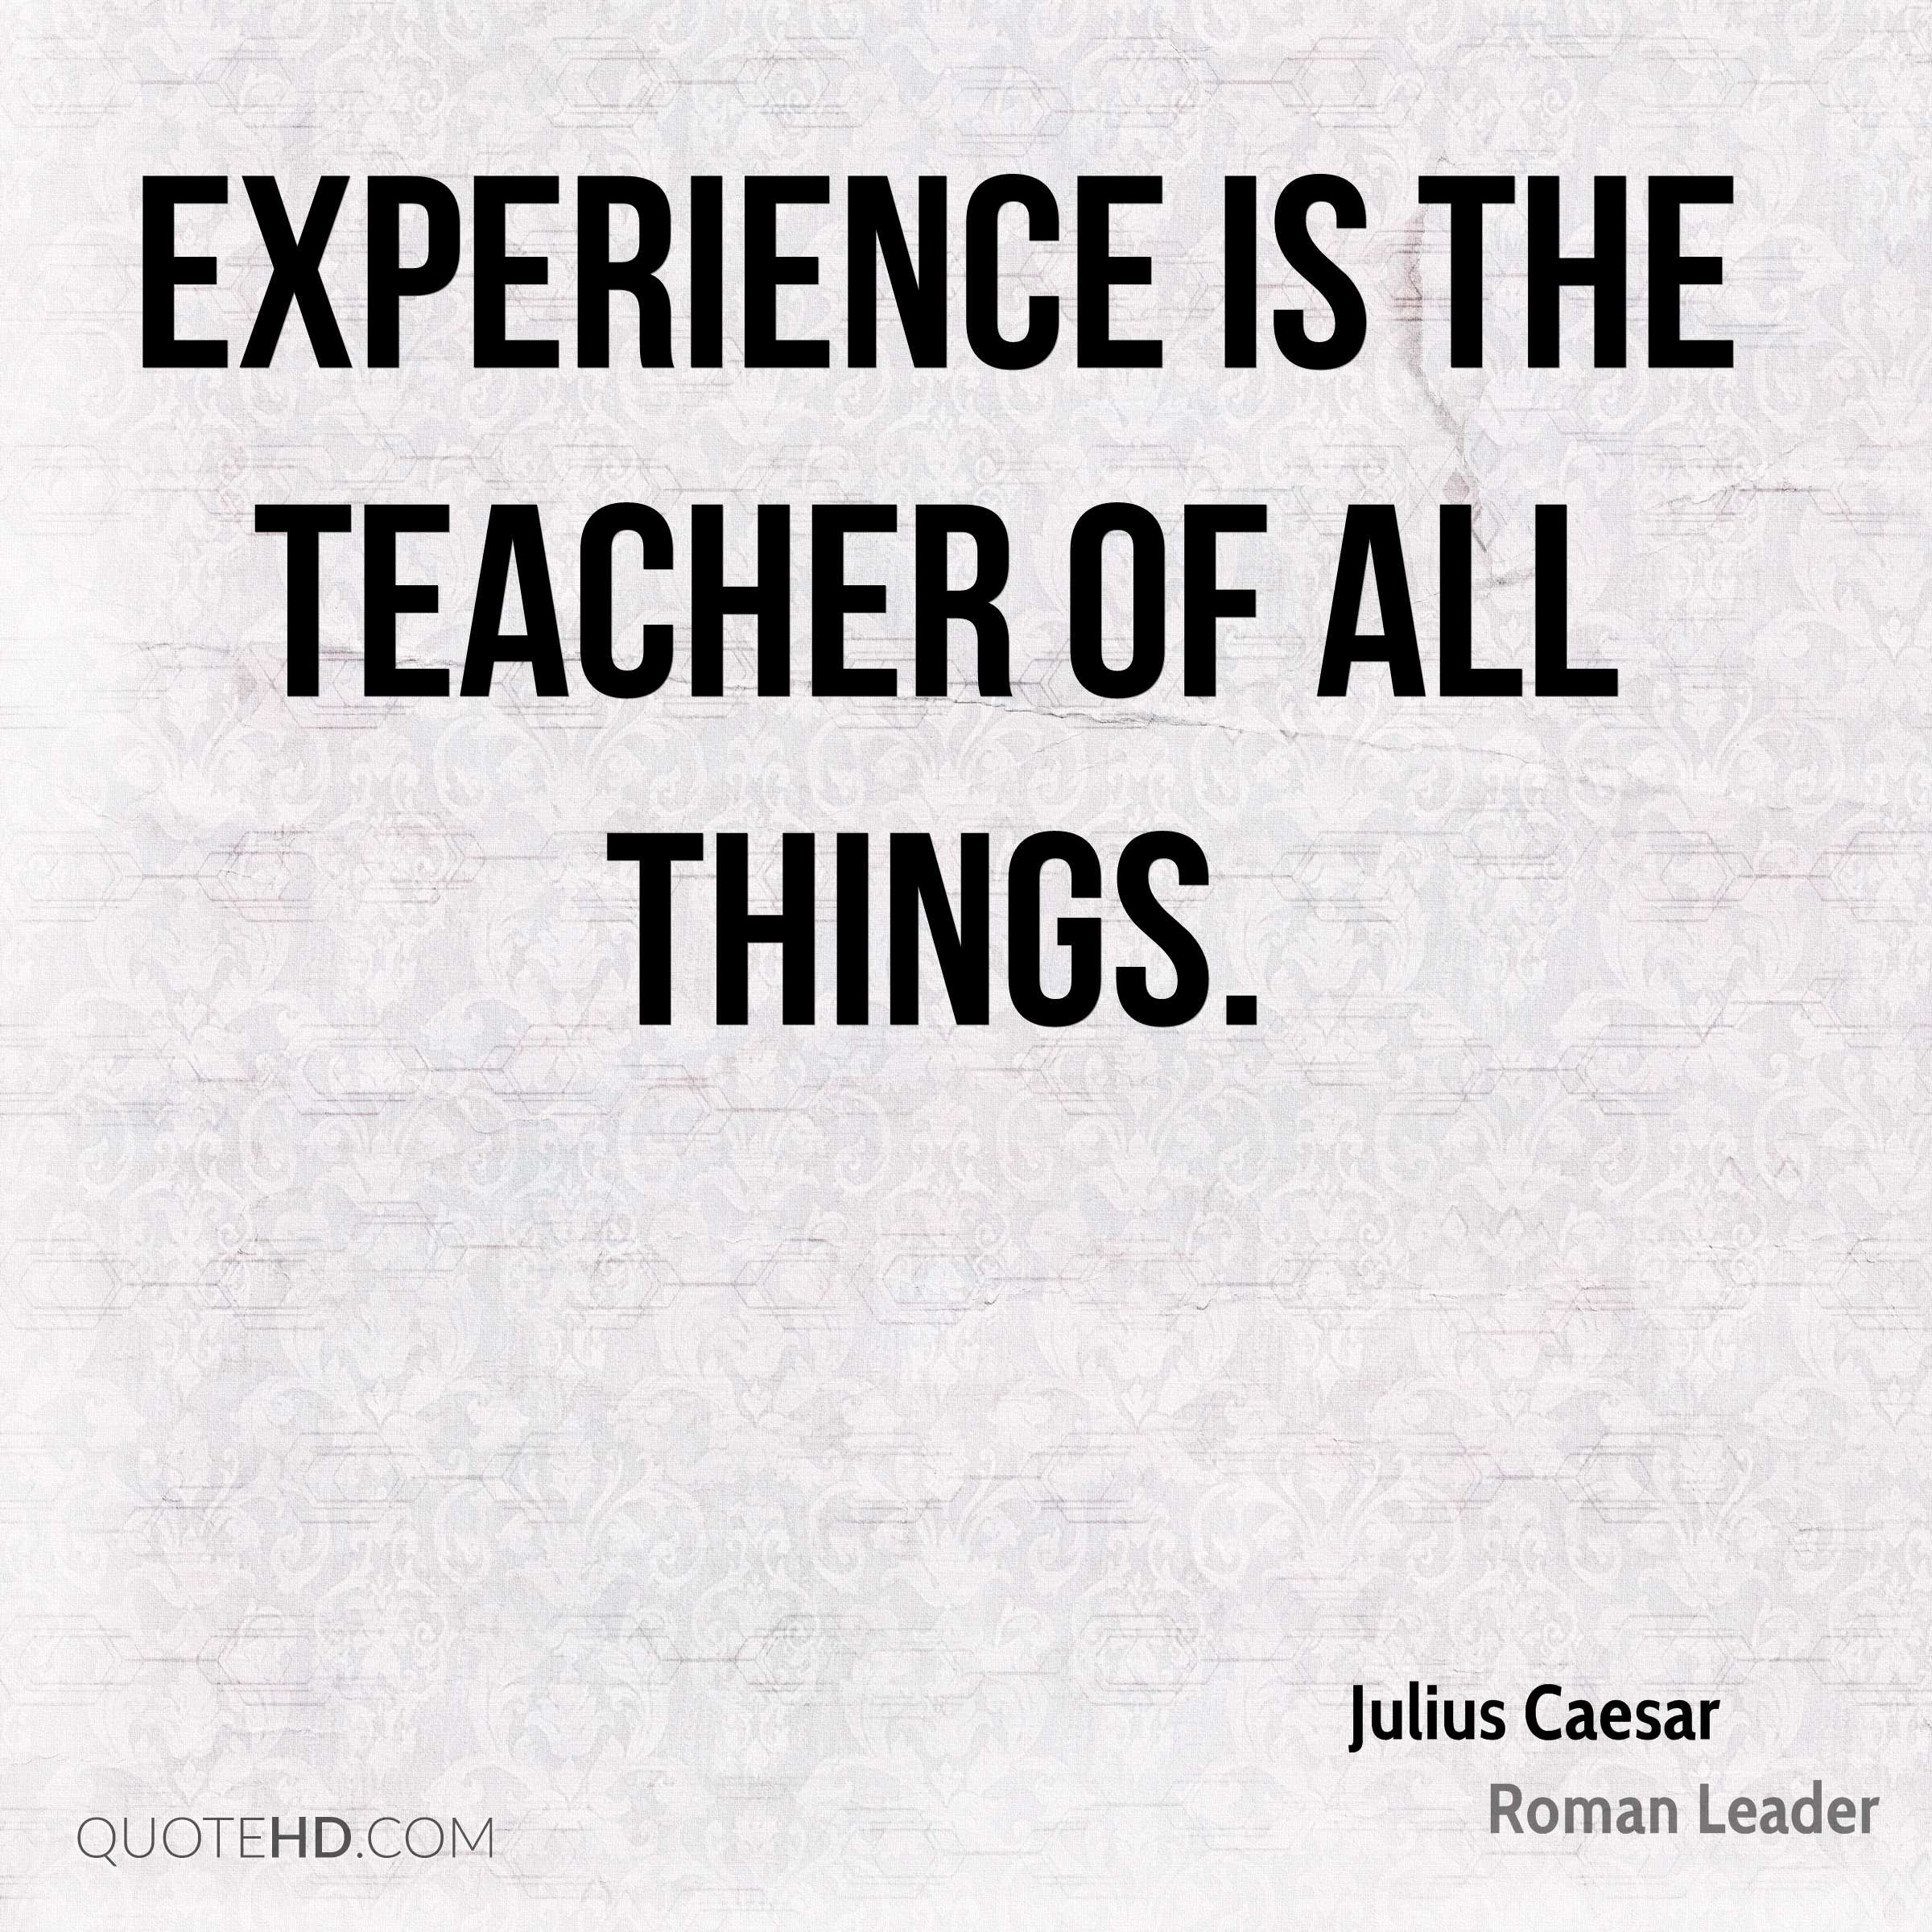 Julius Caesar Leadership Quotes  Julius Caesar Experience Quotes